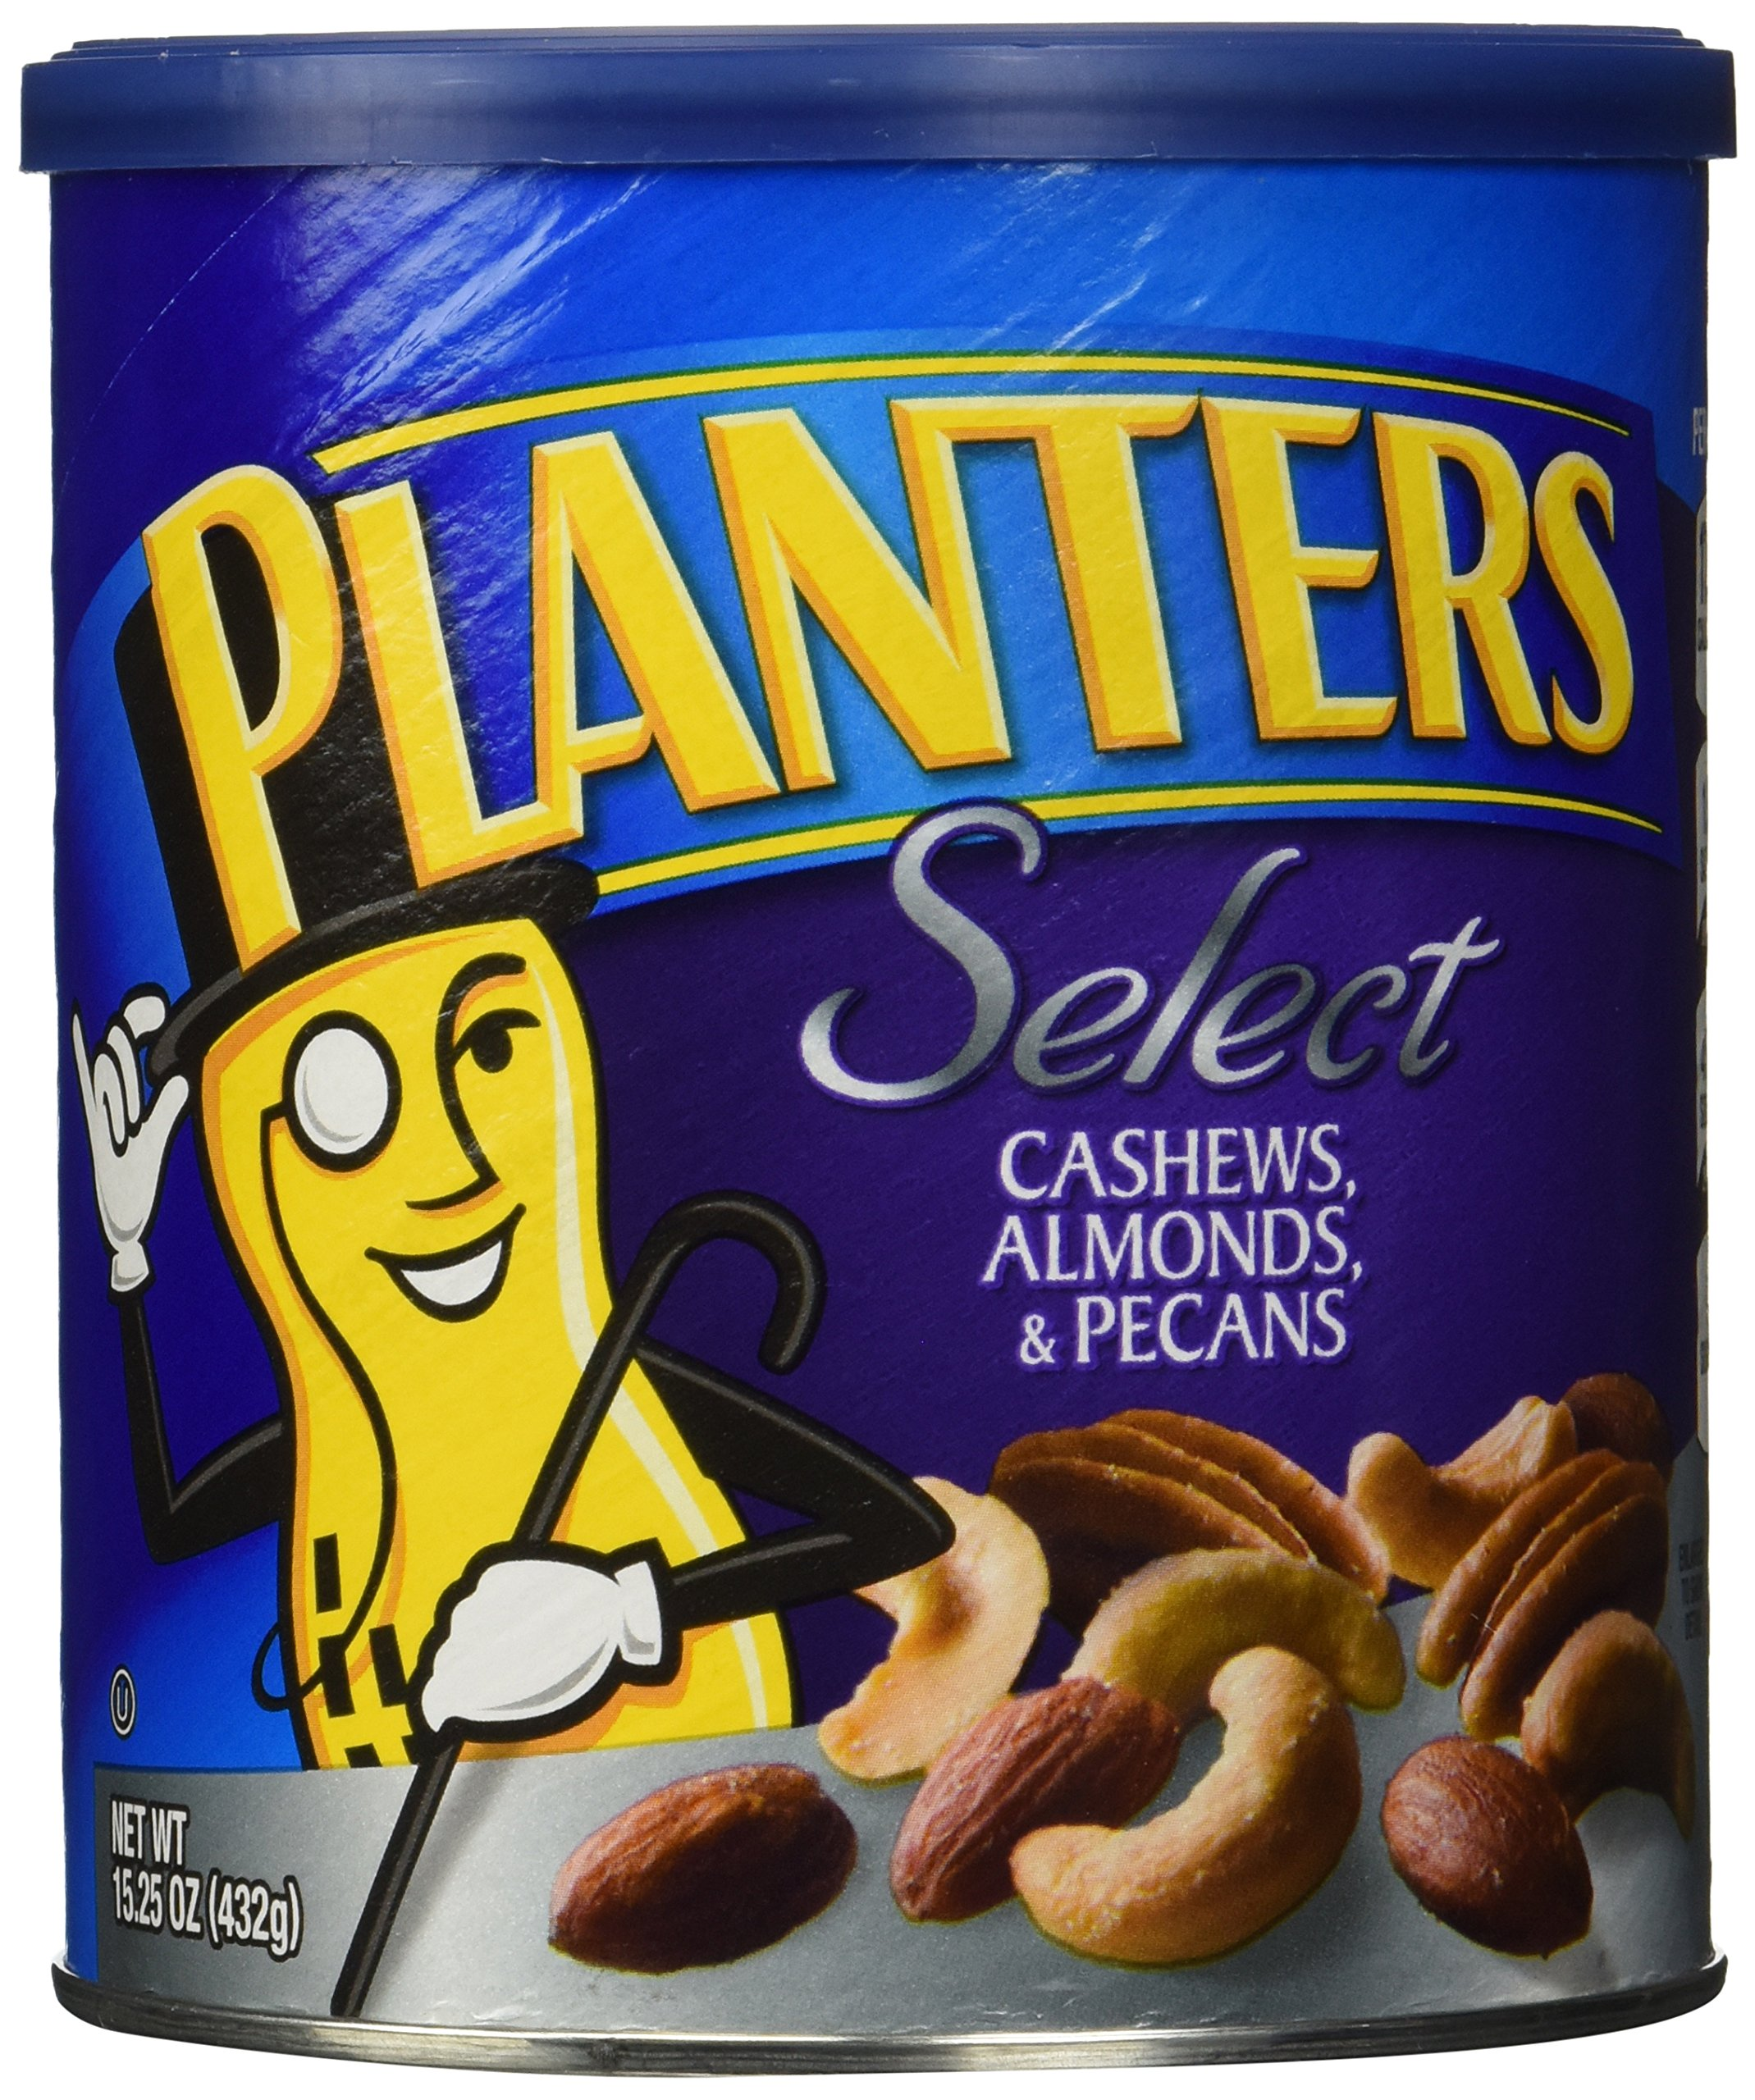 PLANTERS Select Cashews, Almonds & Pecans, 15.25 oz. Resealable Container   Salted Nuts   Kosher